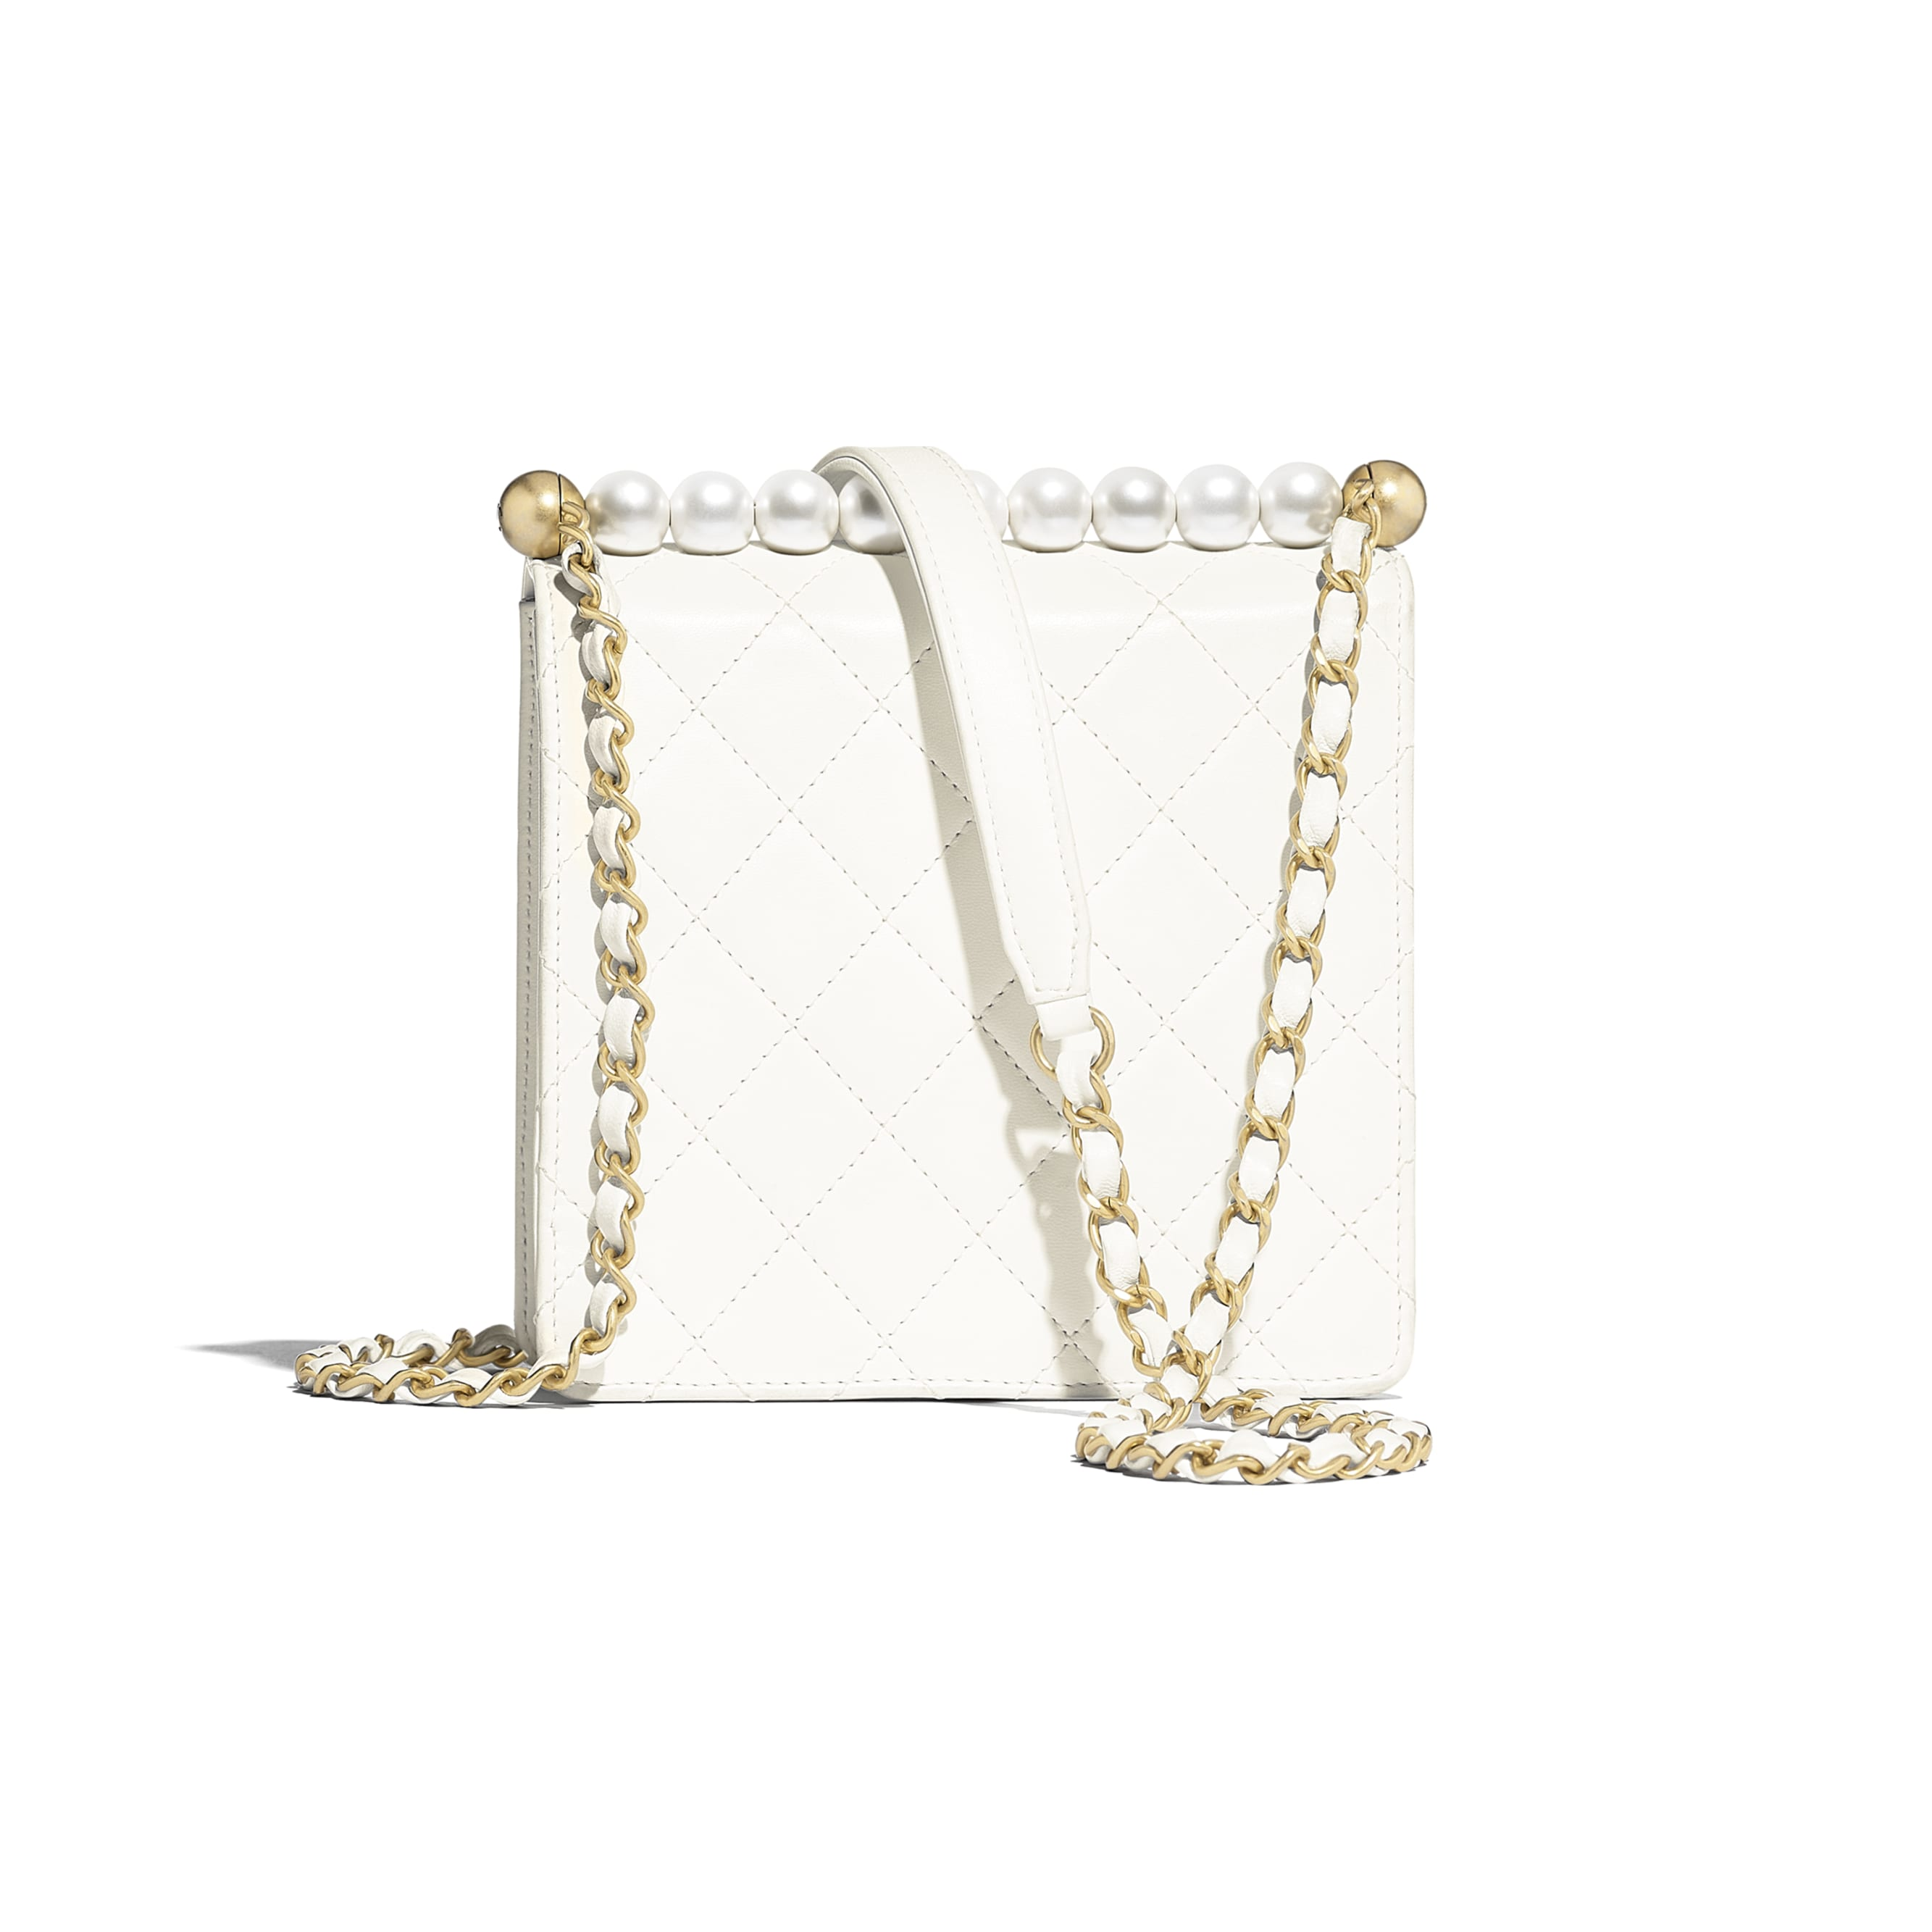 Flap Bag - White - Lambskin, Imitation Pearls & Gold-Tone Metal - Alternative view - see standard sized version